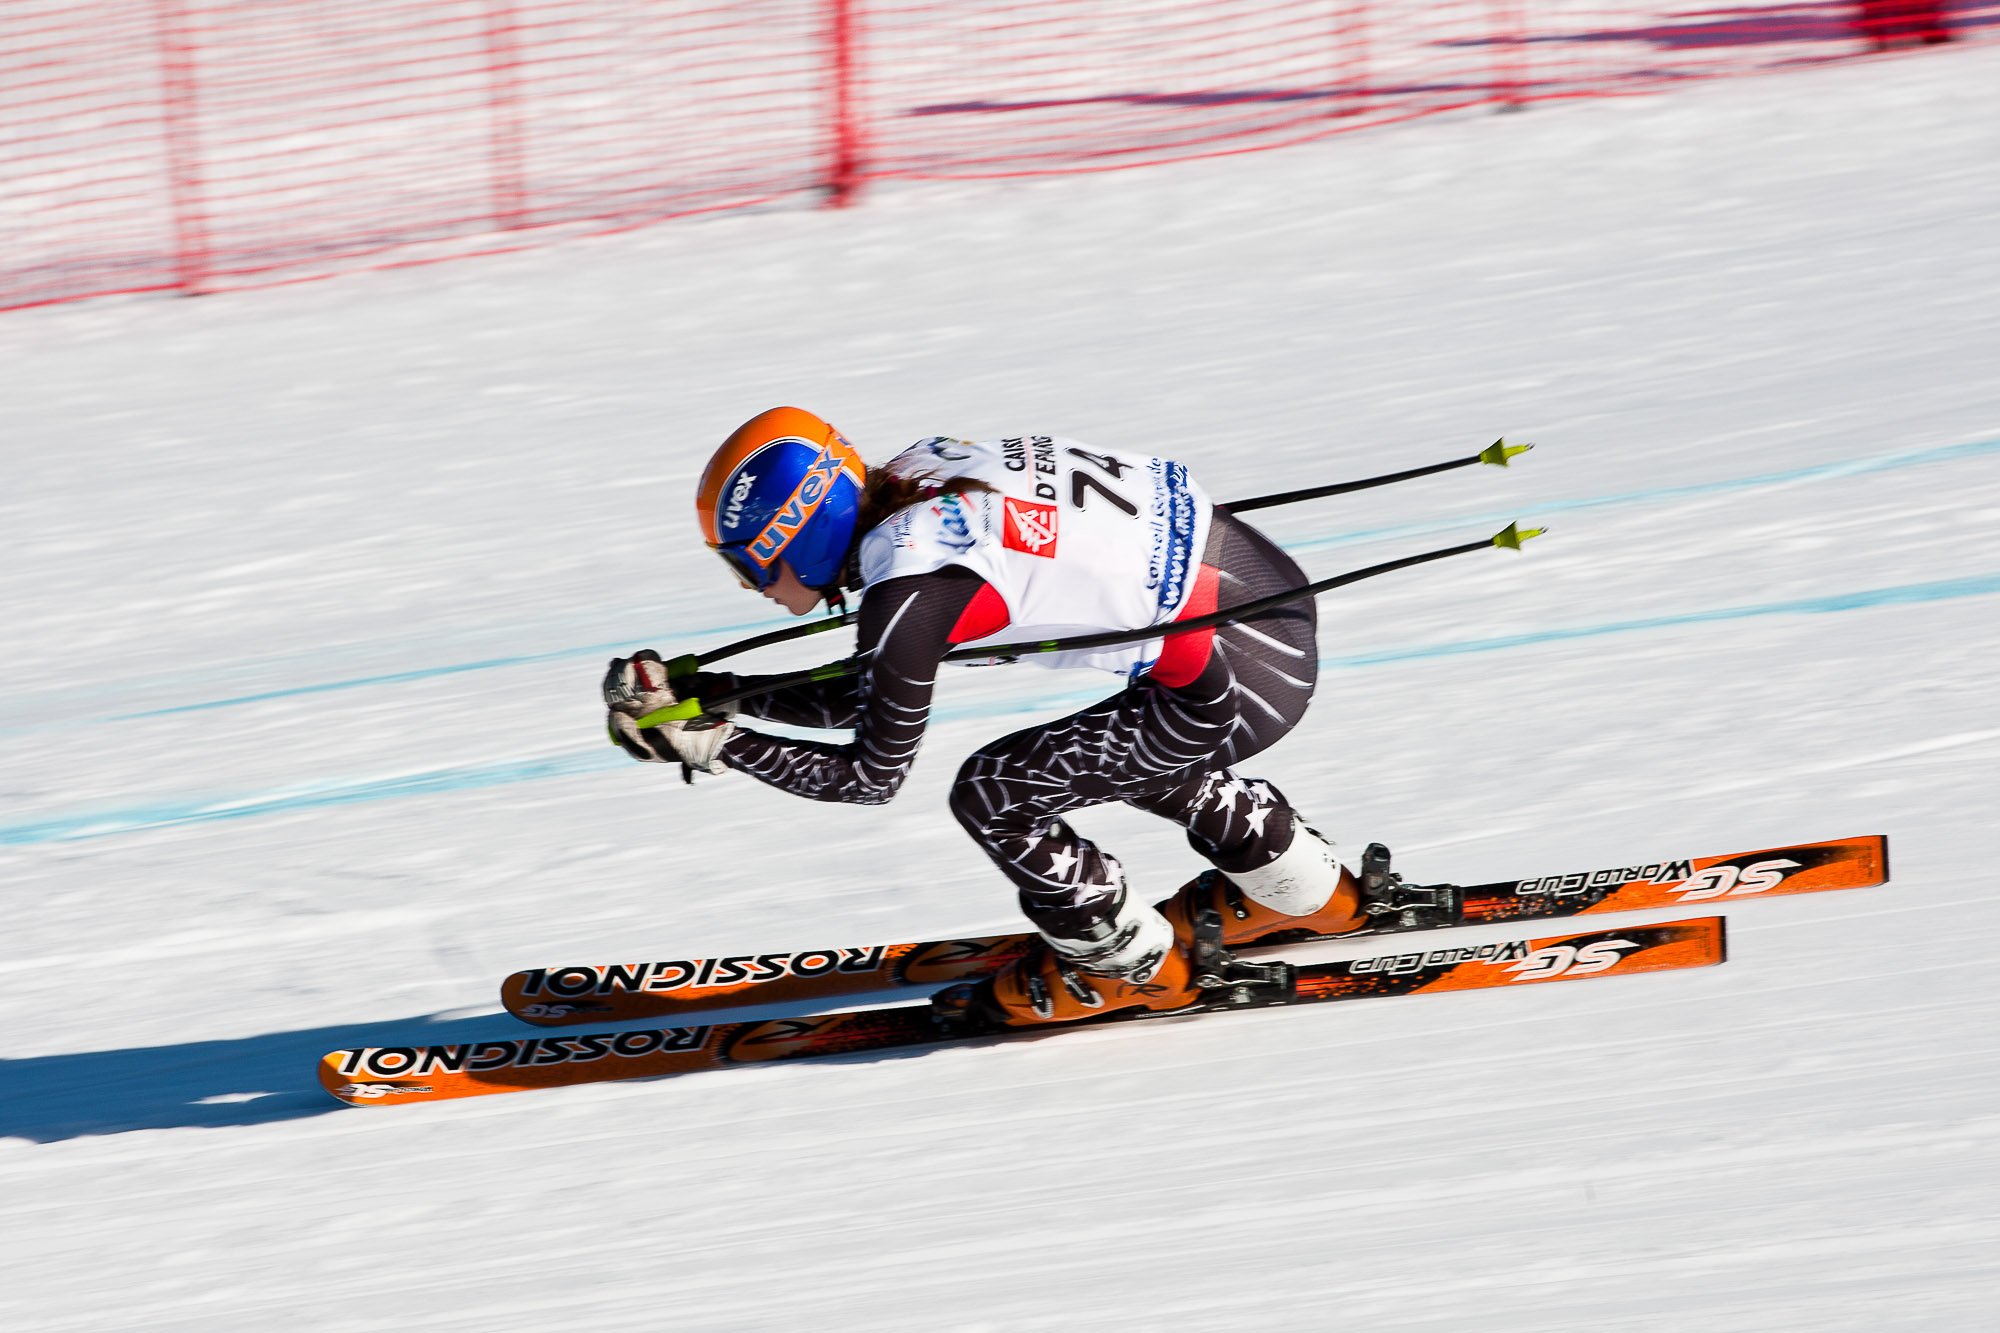 Coupe_Europe_ski_dames-178.jpg